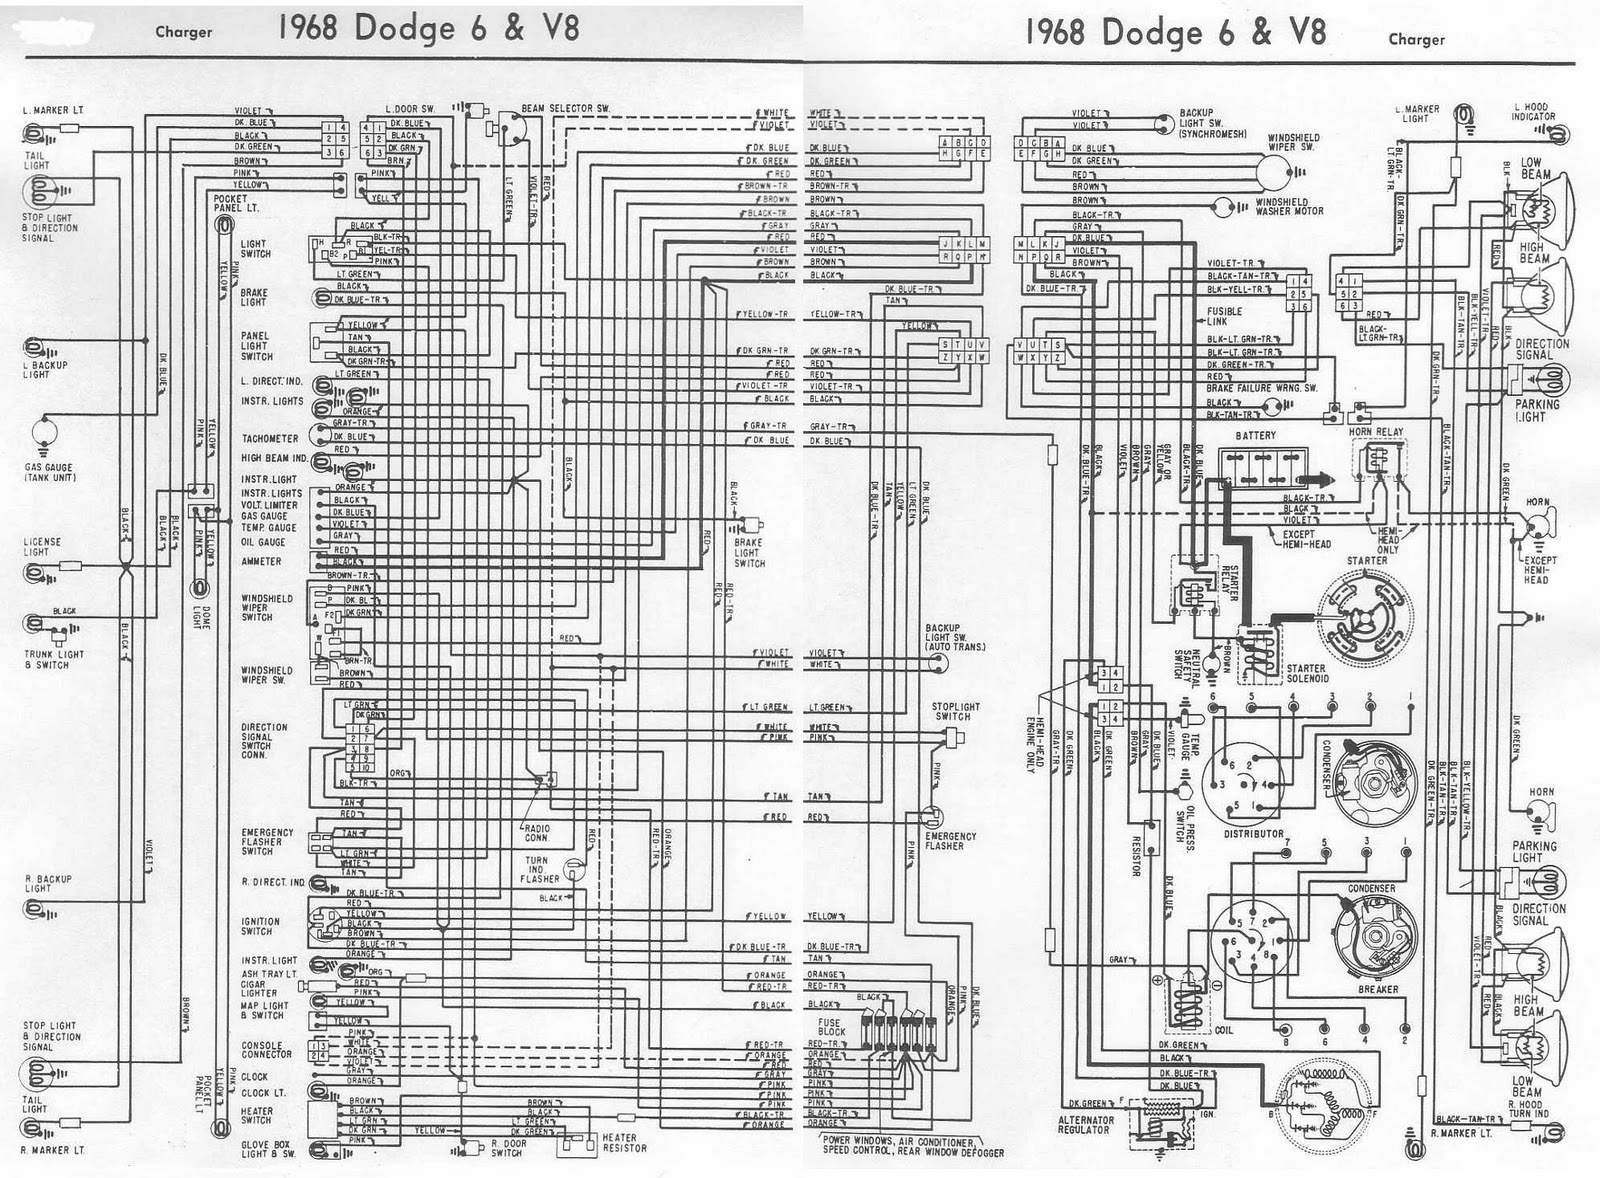 Dodge+Charger+1968+6+and+V8+Complete+Electrical+Wiring+Diagram dodge charger 1968 6 and v8 complete electrical wiring diagram dodge wiring diagrams at suagrazia.org